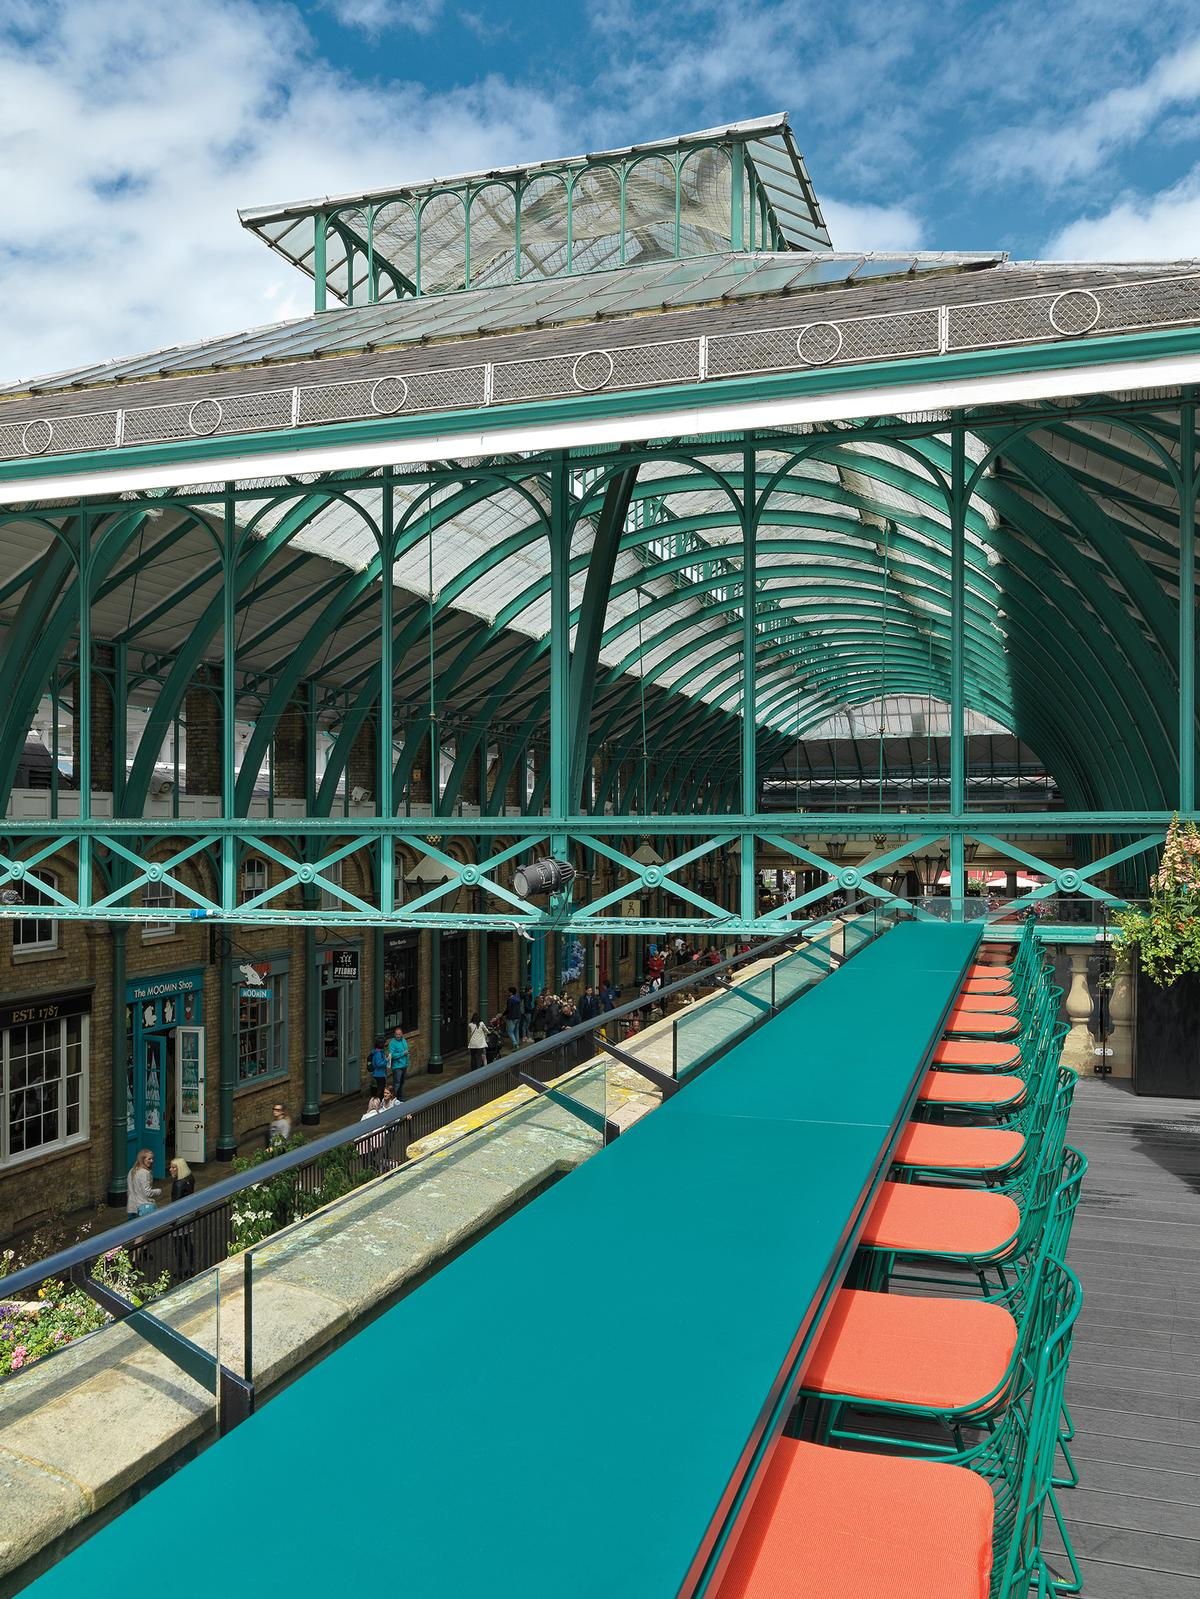 The green theme matches the metalwork of Covent Garden Market / Matteo Piazza